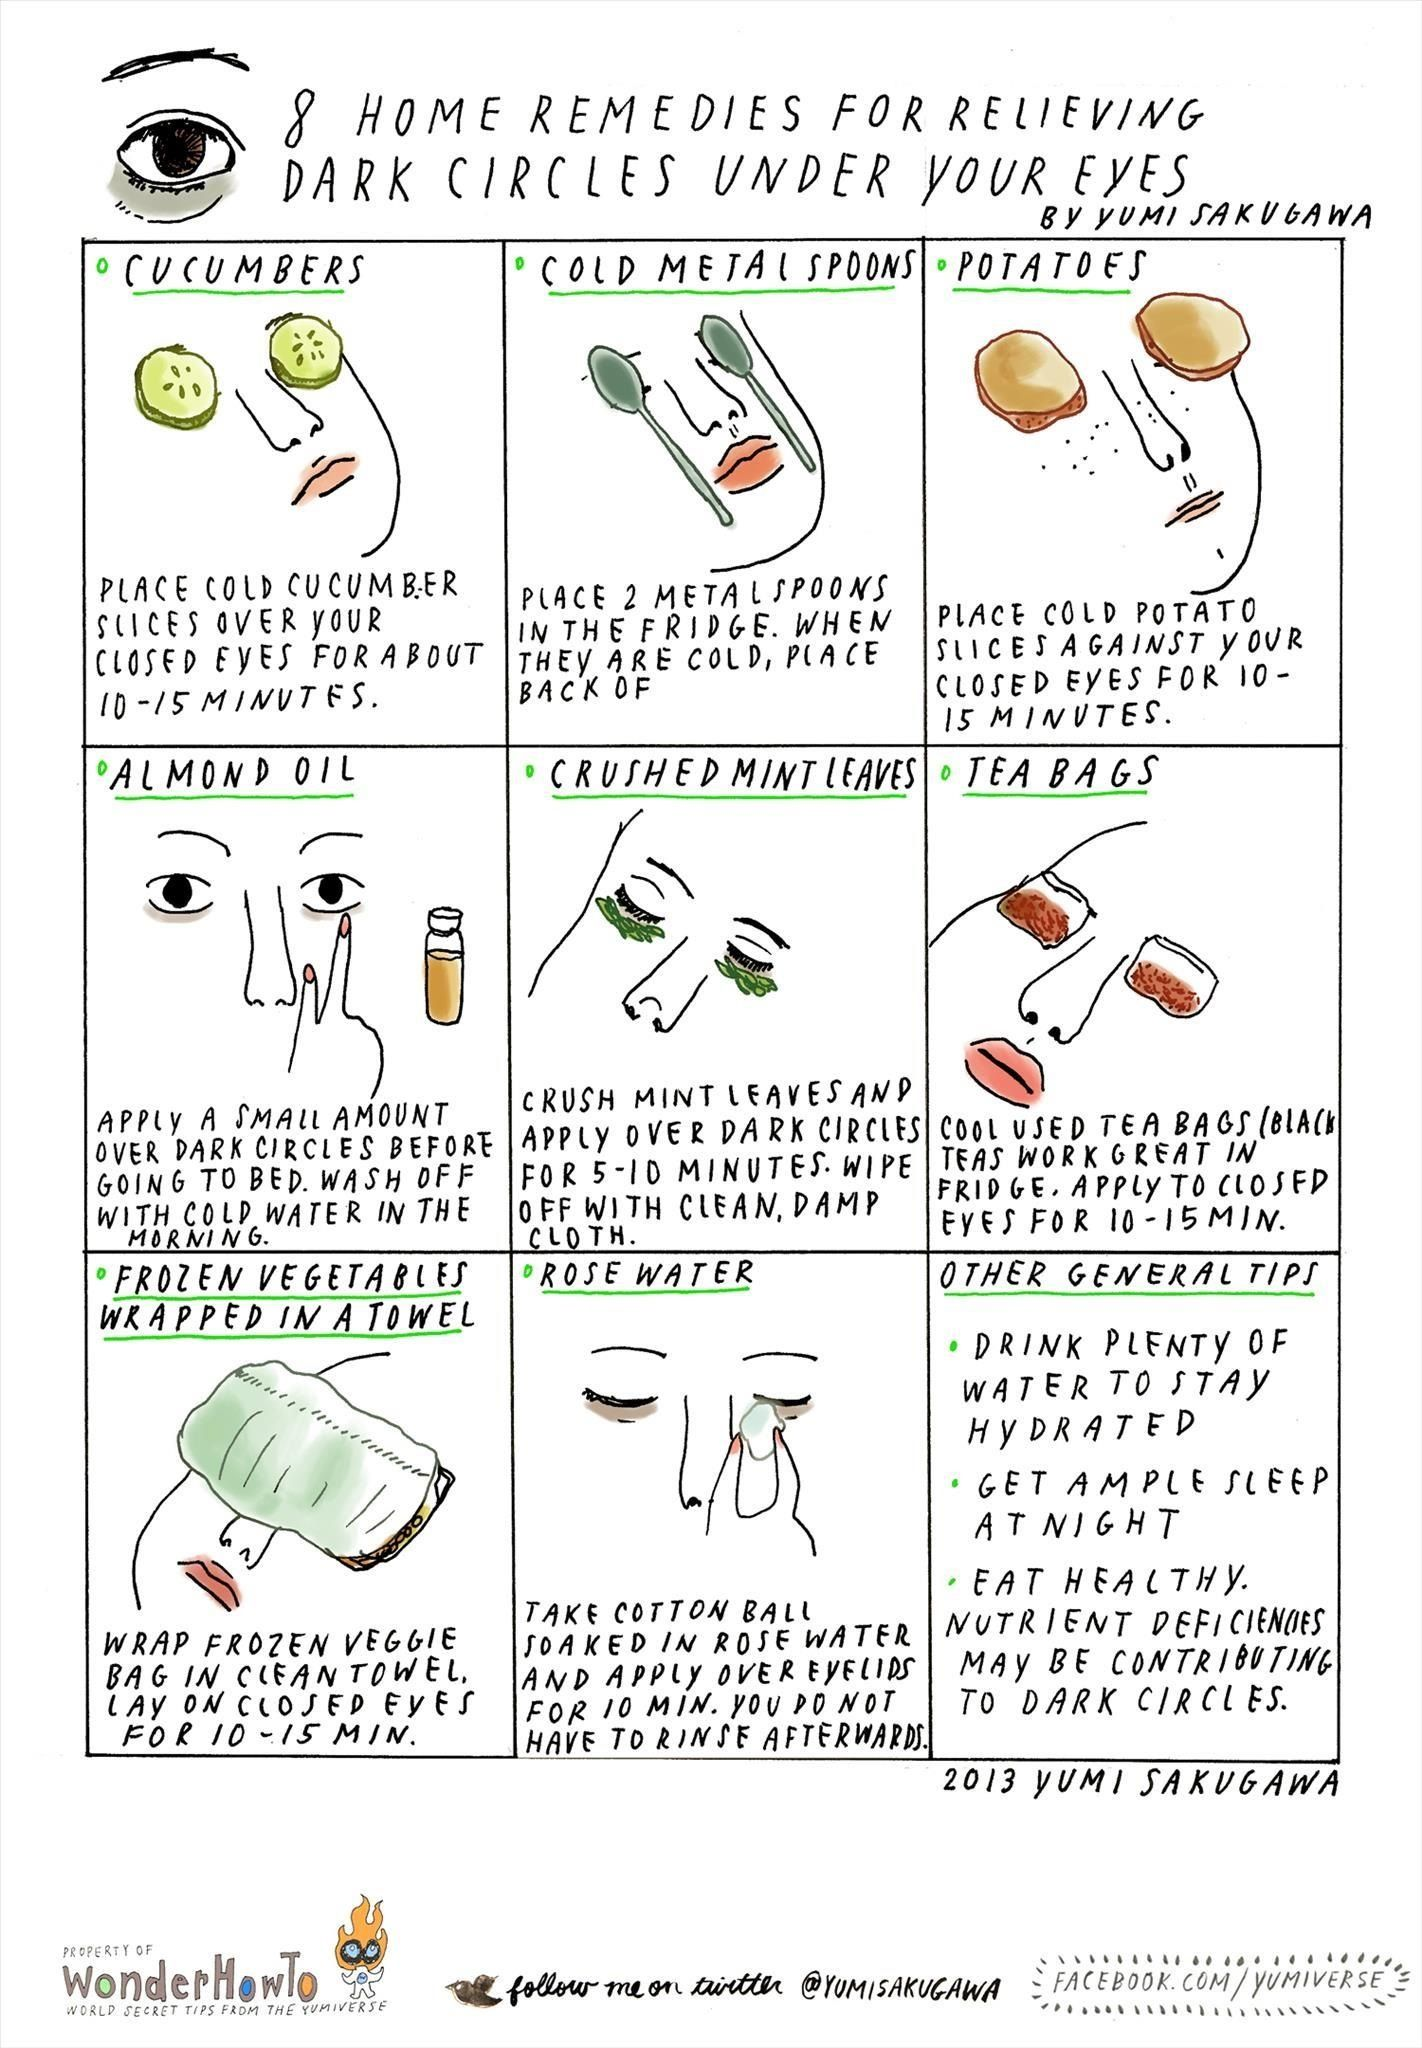 How To 8 Home Remedies That'll Get Rid of Those Dark